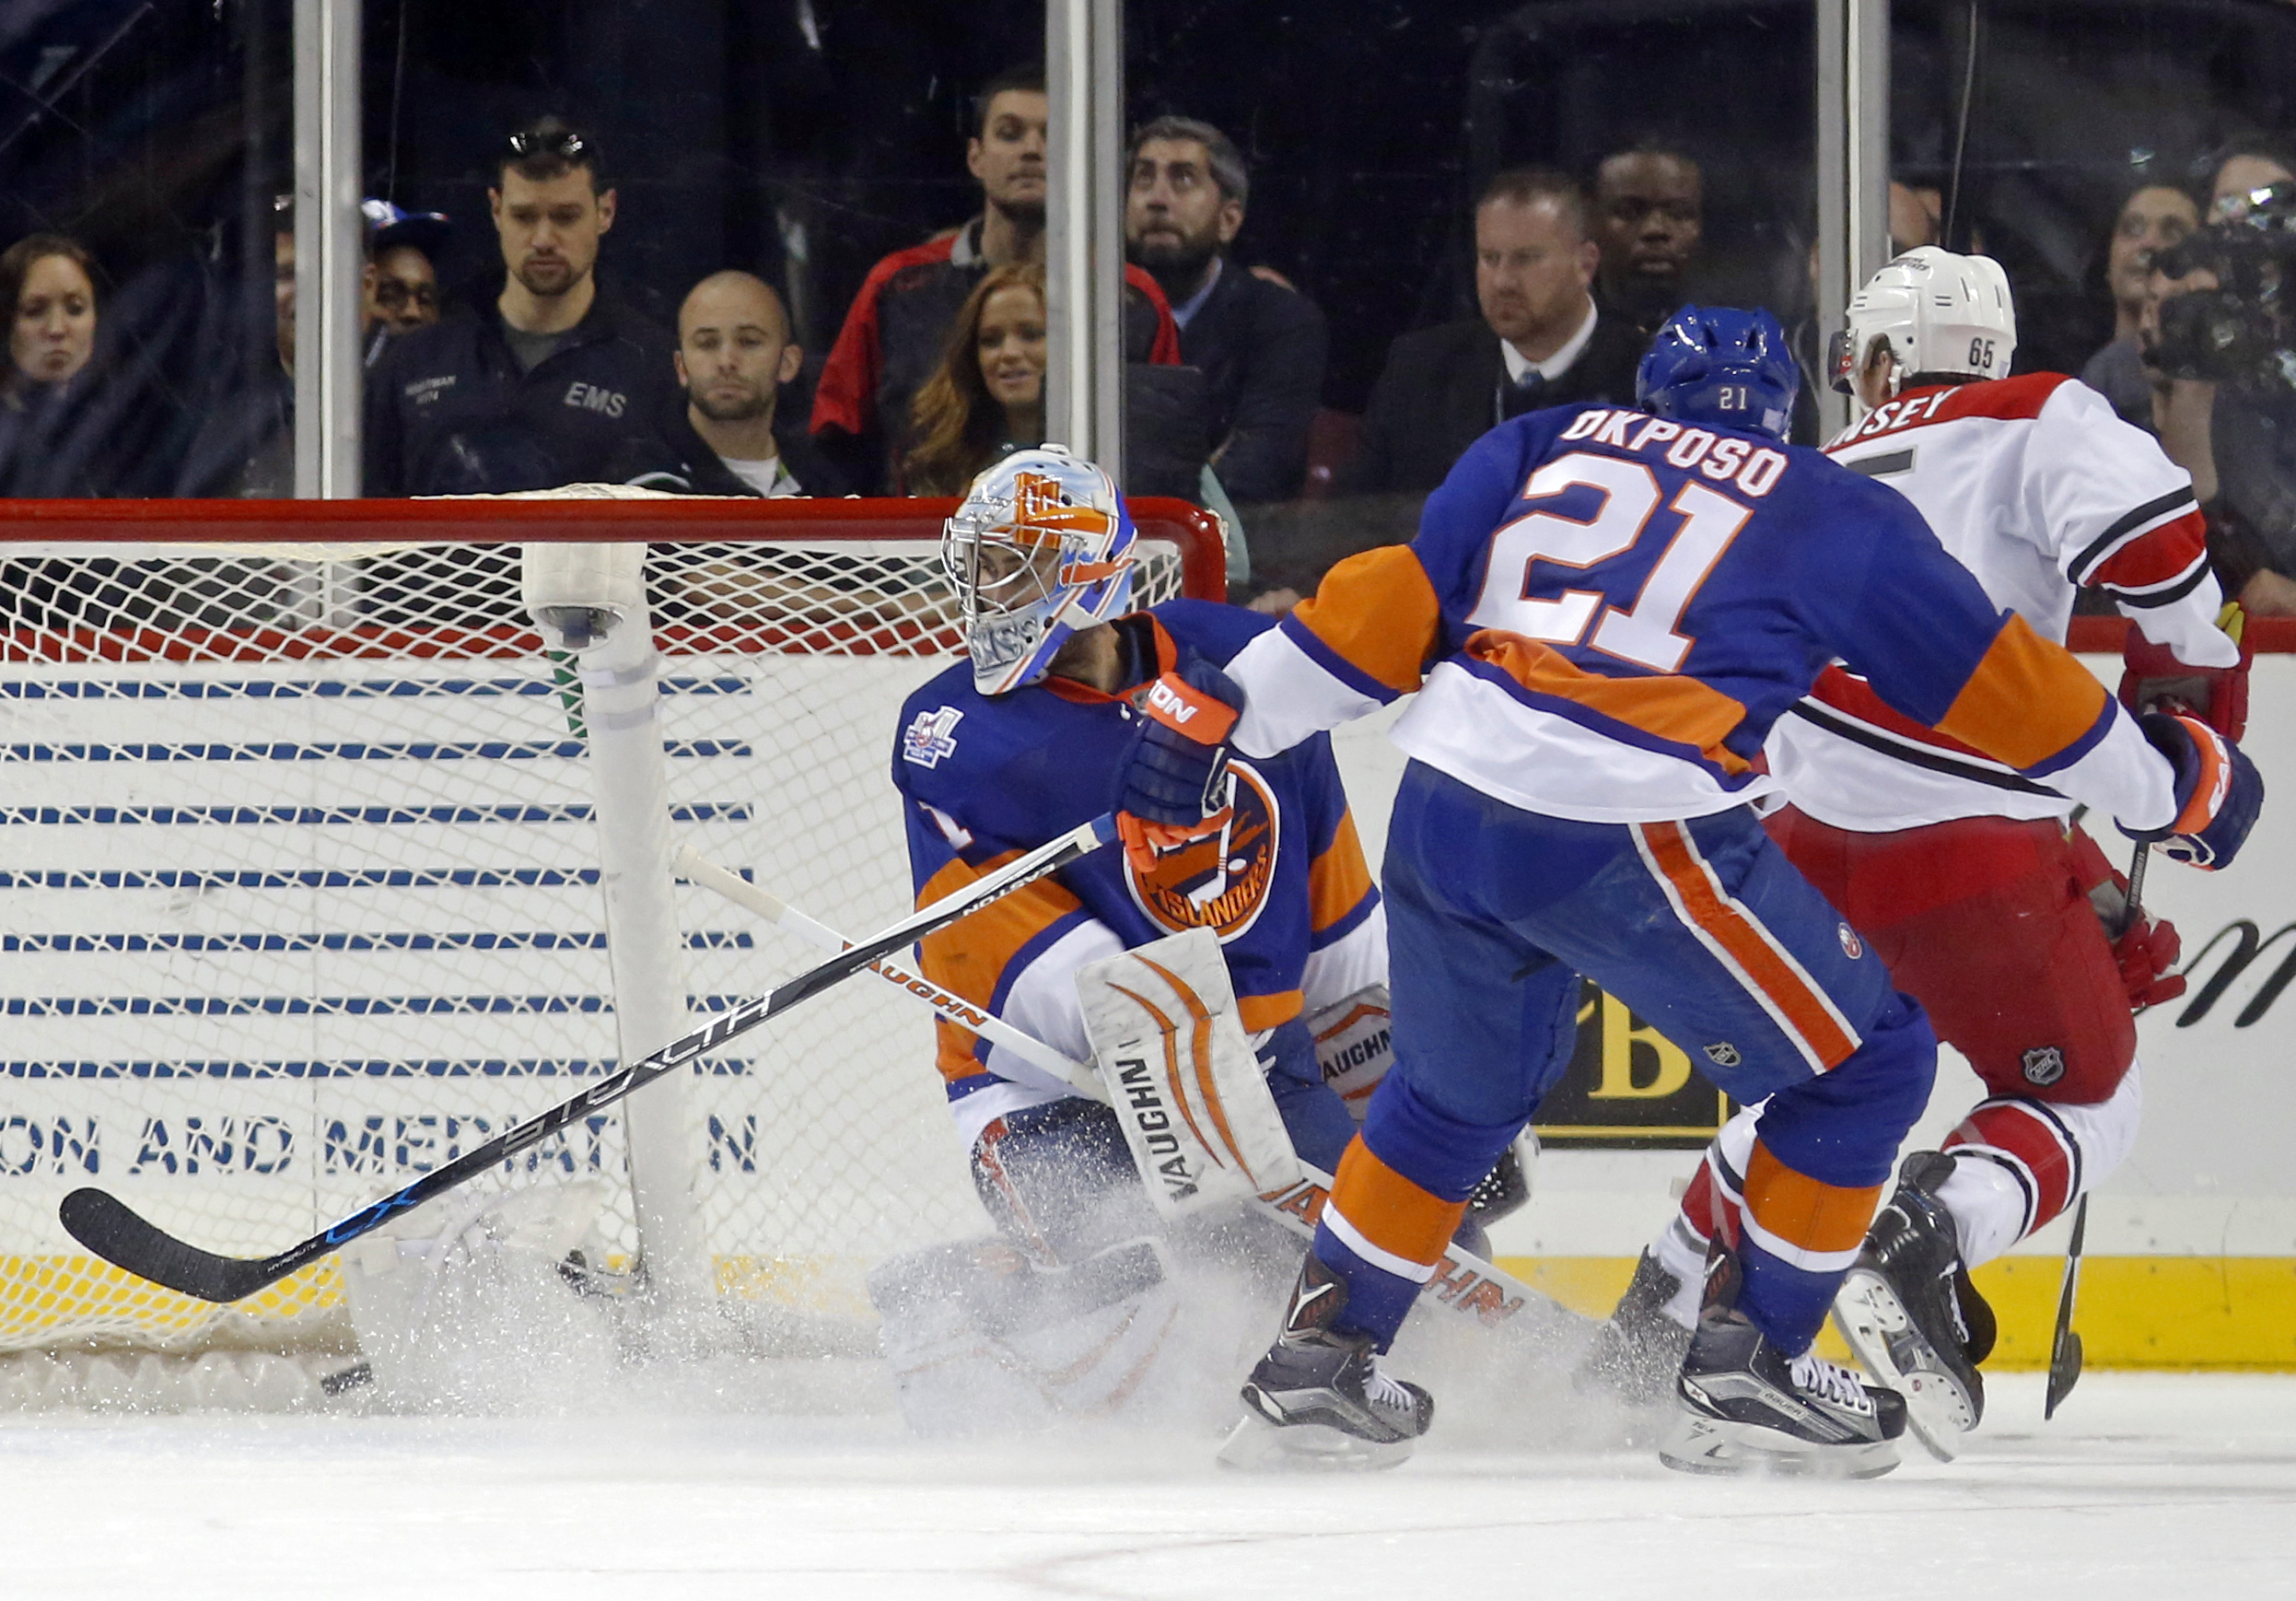 New York Islanders goalie Thomas Greiss (1), of Germany, looks over his shoulder as Carolina Hurricanes defenseman Ron Hainsey (65) scores the winning goal past the defense of Islanders right wing Kyle Okposo (21) in overtime of an NHL hockey game in New